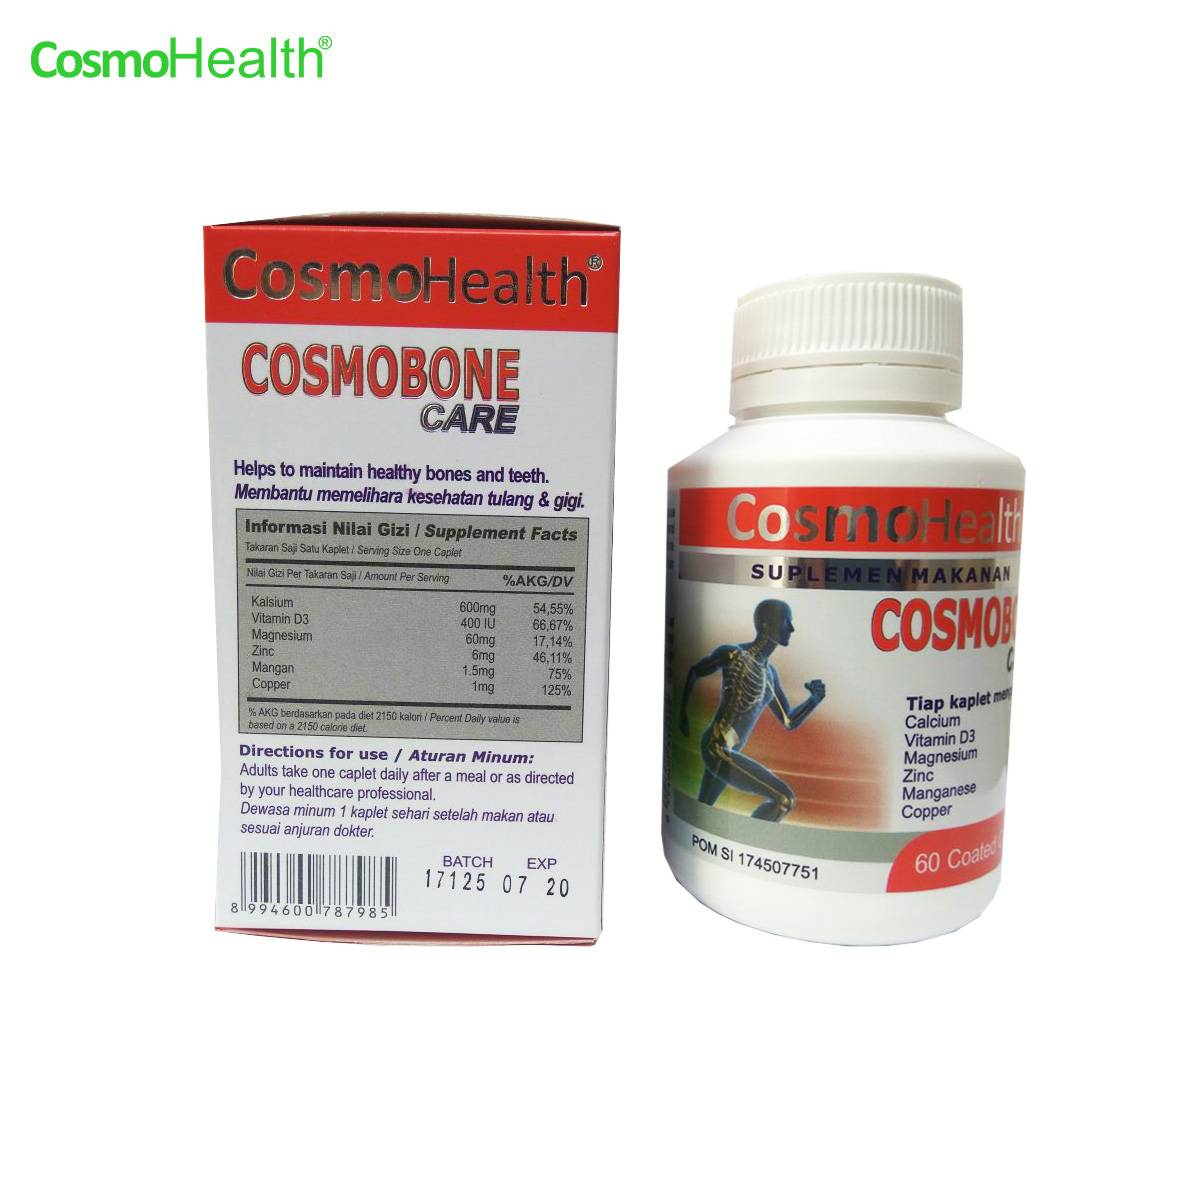 Cosmohealth Cosmobone Care 60 Coated Caplets (2 BOTOL + FREE 1 BOTOL)2